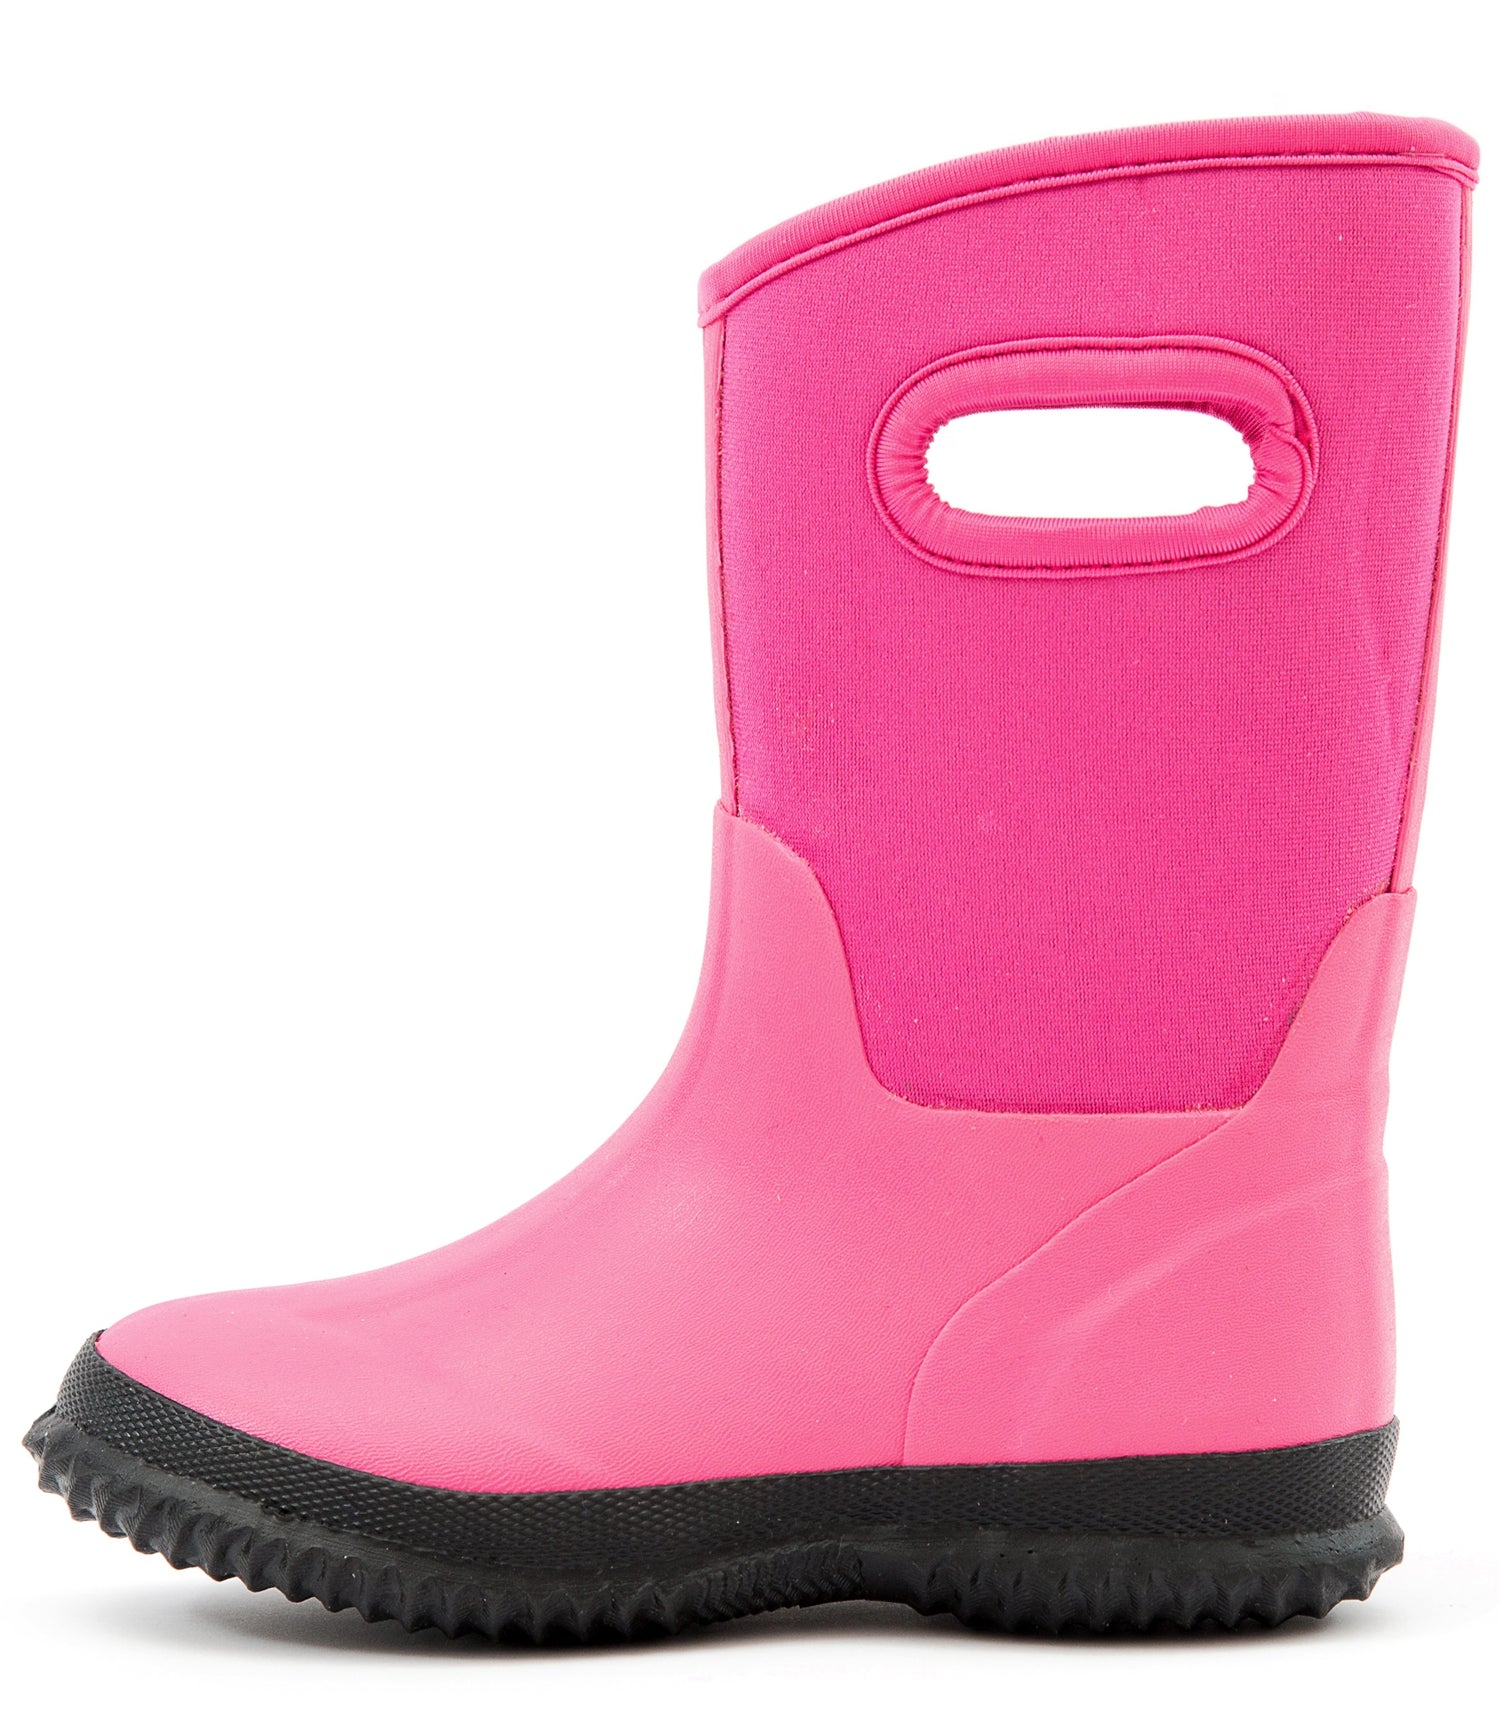 Outee Kids Girls Neoprene Snow Boots Mud Boots - Pink